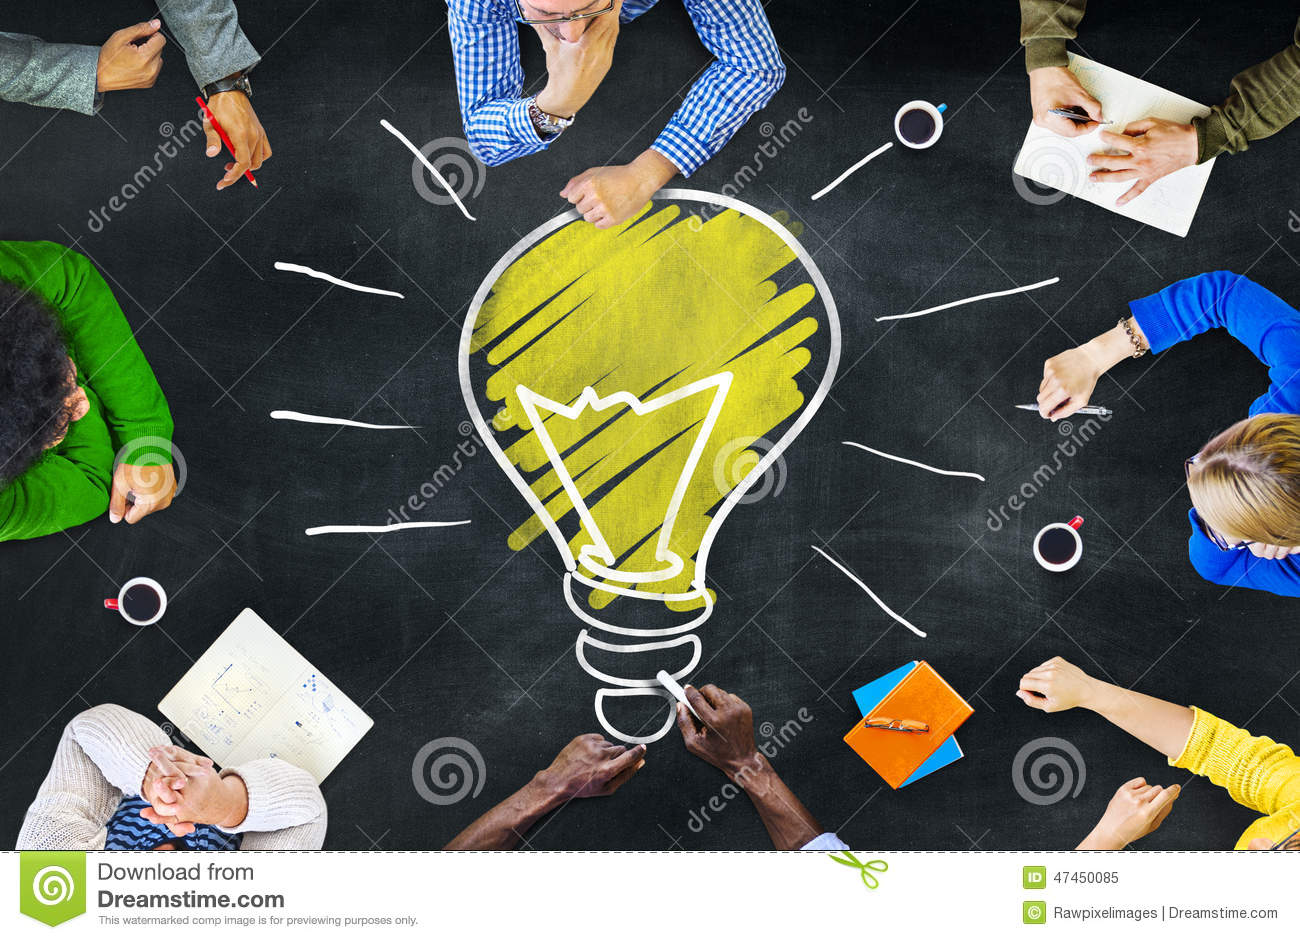 Ideas Thoughts Knowledge Intelligence Learning Meeting Concept